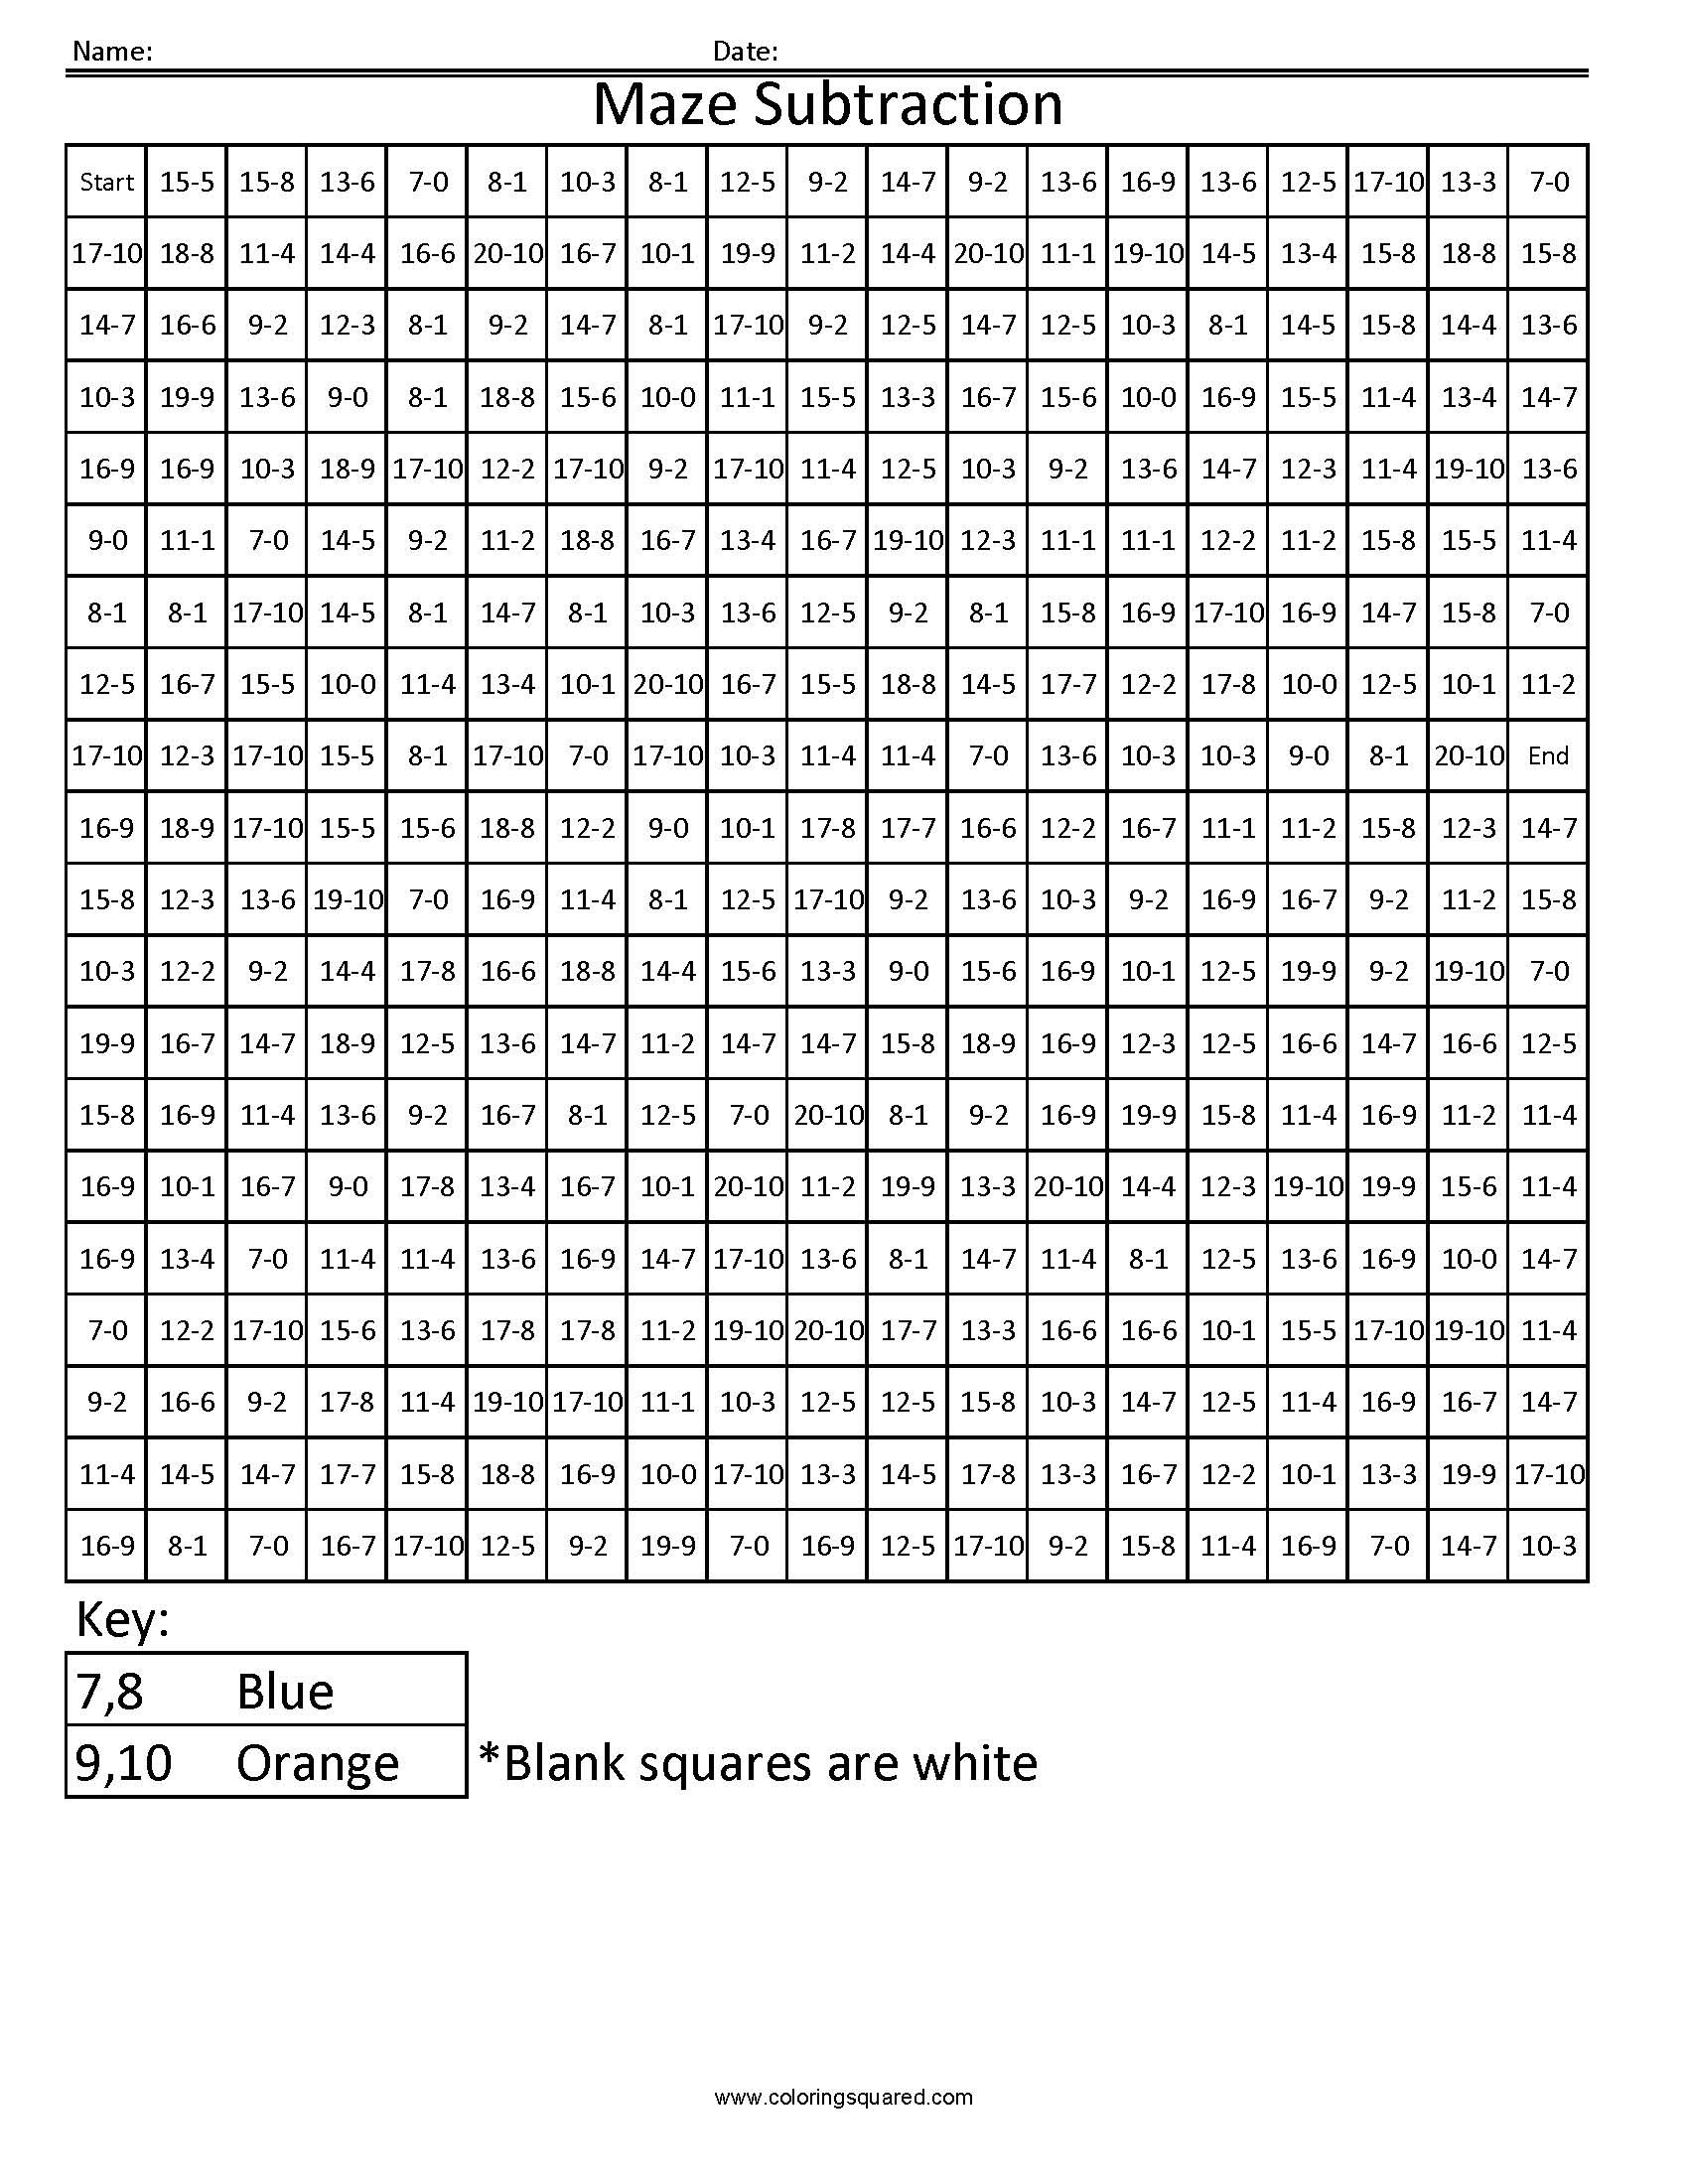 Free Grid Coloring Worksheets 3dsc10 Maze Free Math Fact Coloring Pages Coloring Squared